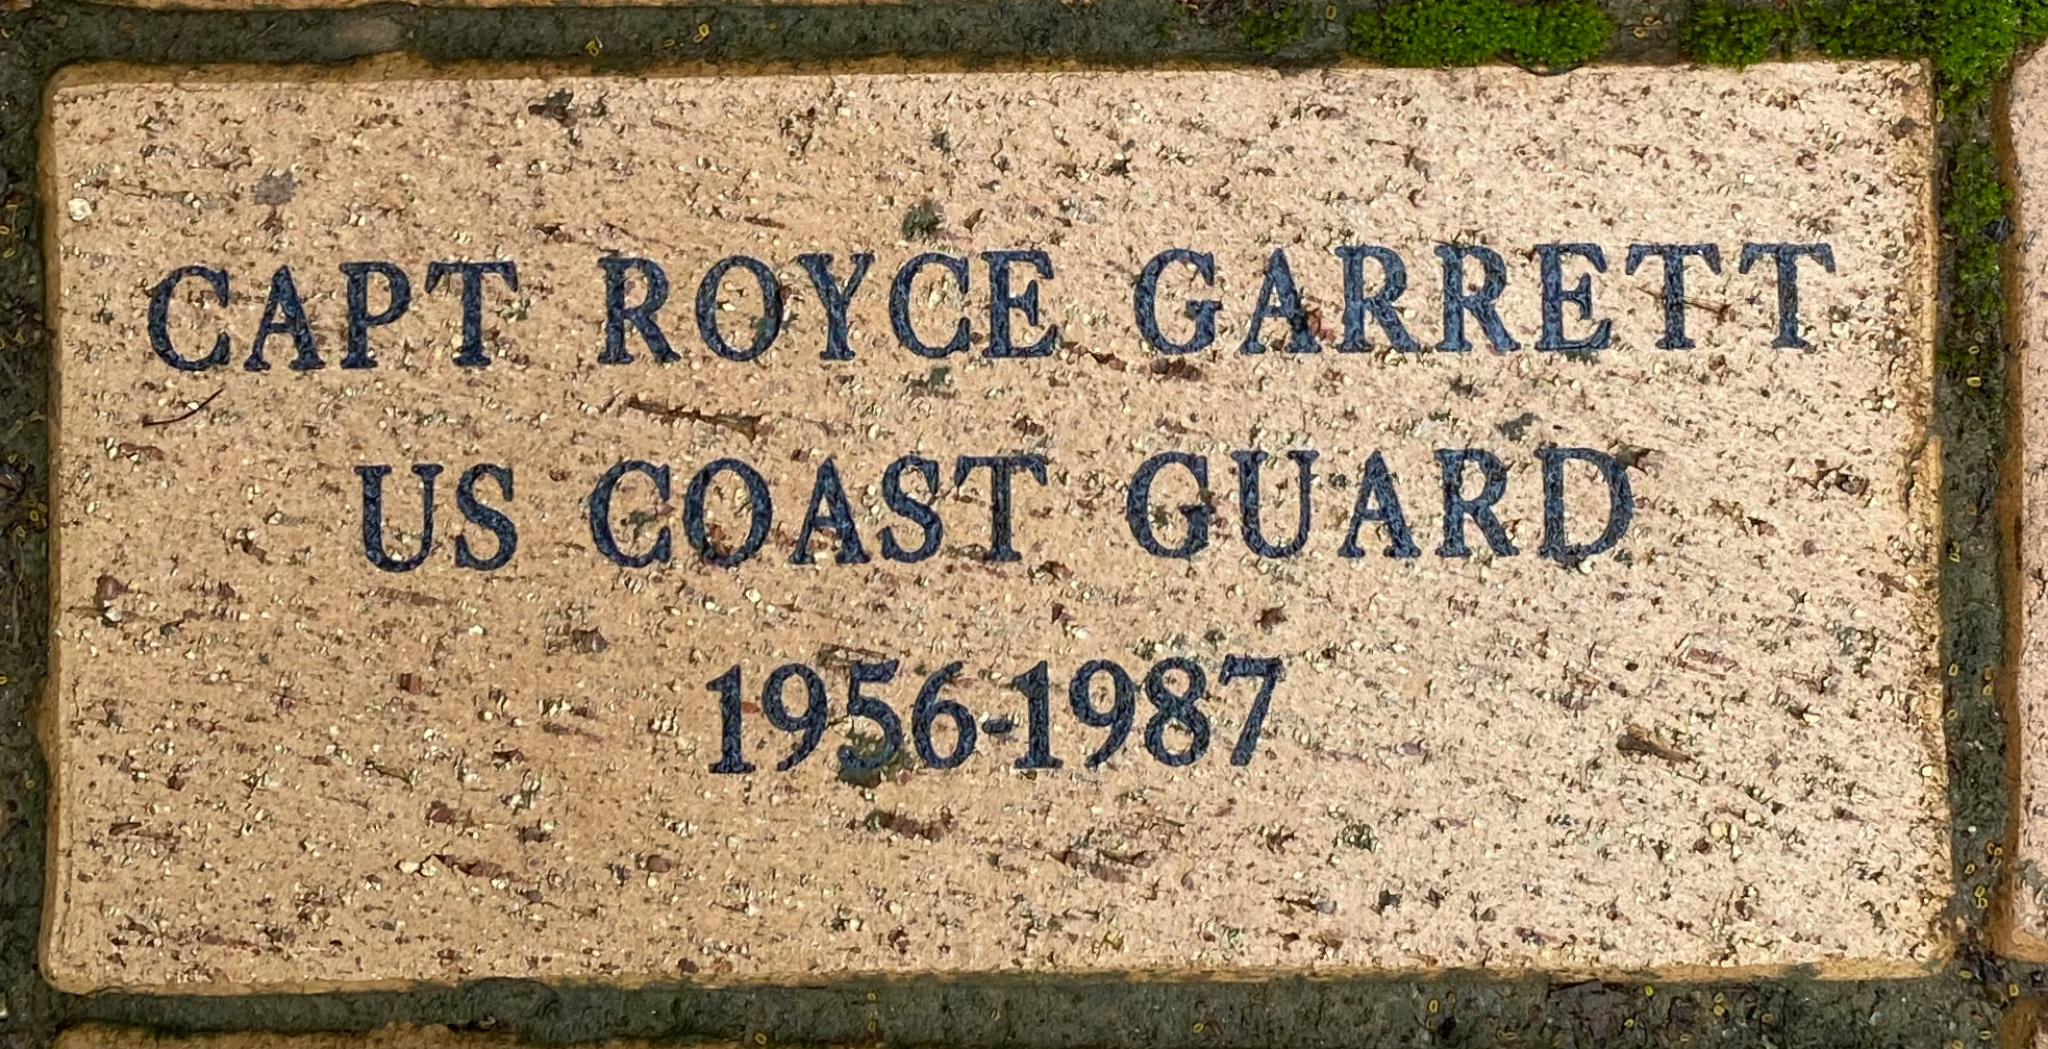 CAPT ROYCE GARRETT US COAST GUARD 1956-1987